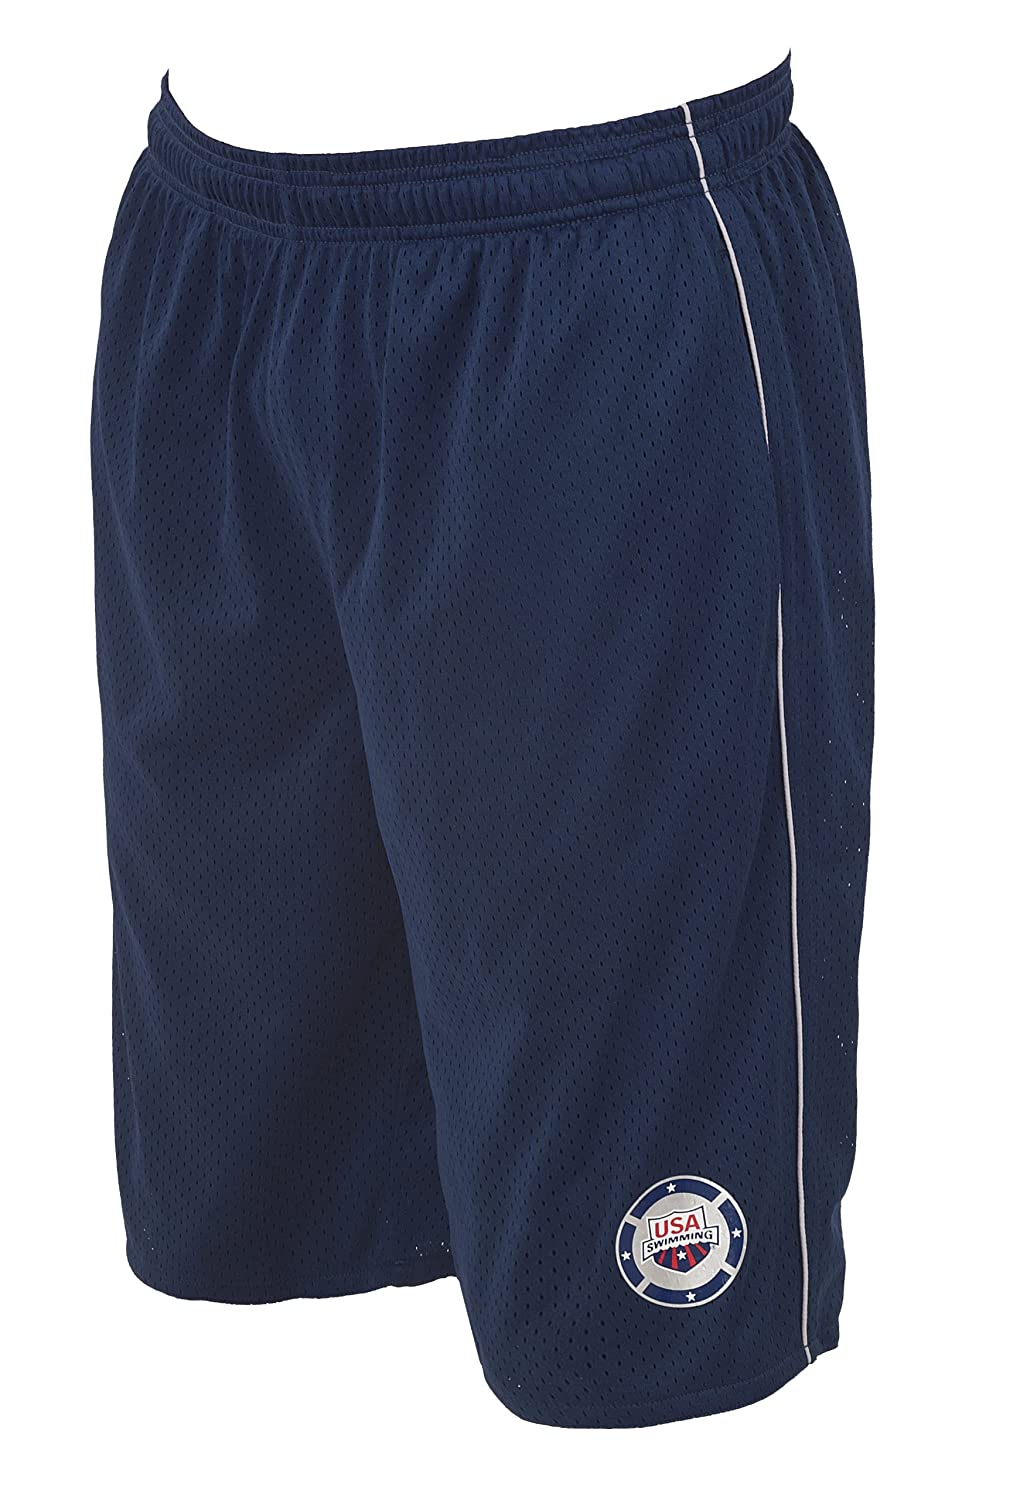 Arena USA Schwimmen extralang Bermuda Shorts